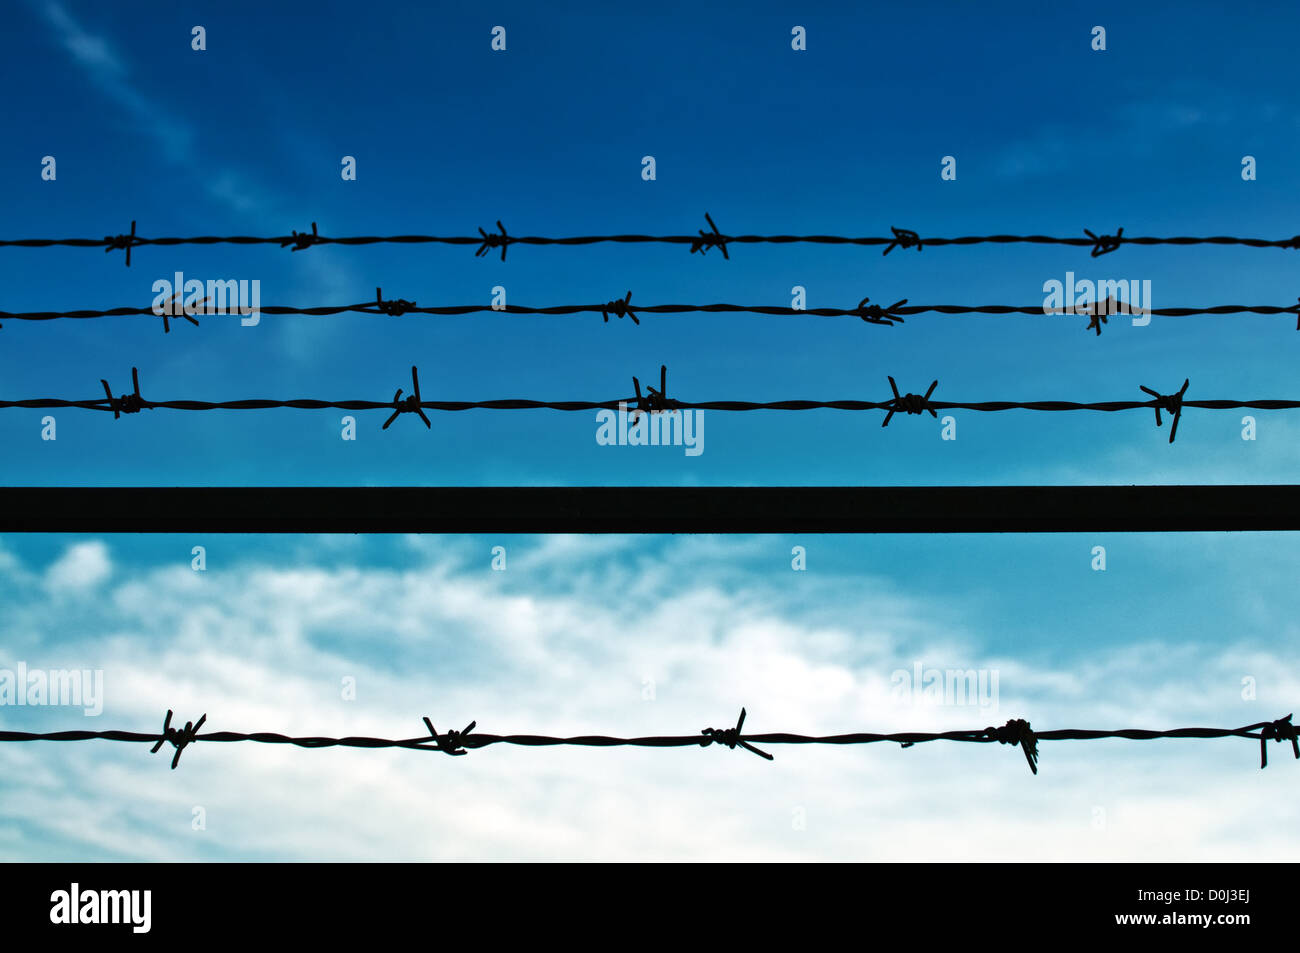 Barbed wire fence against the blue sky - Stock Image